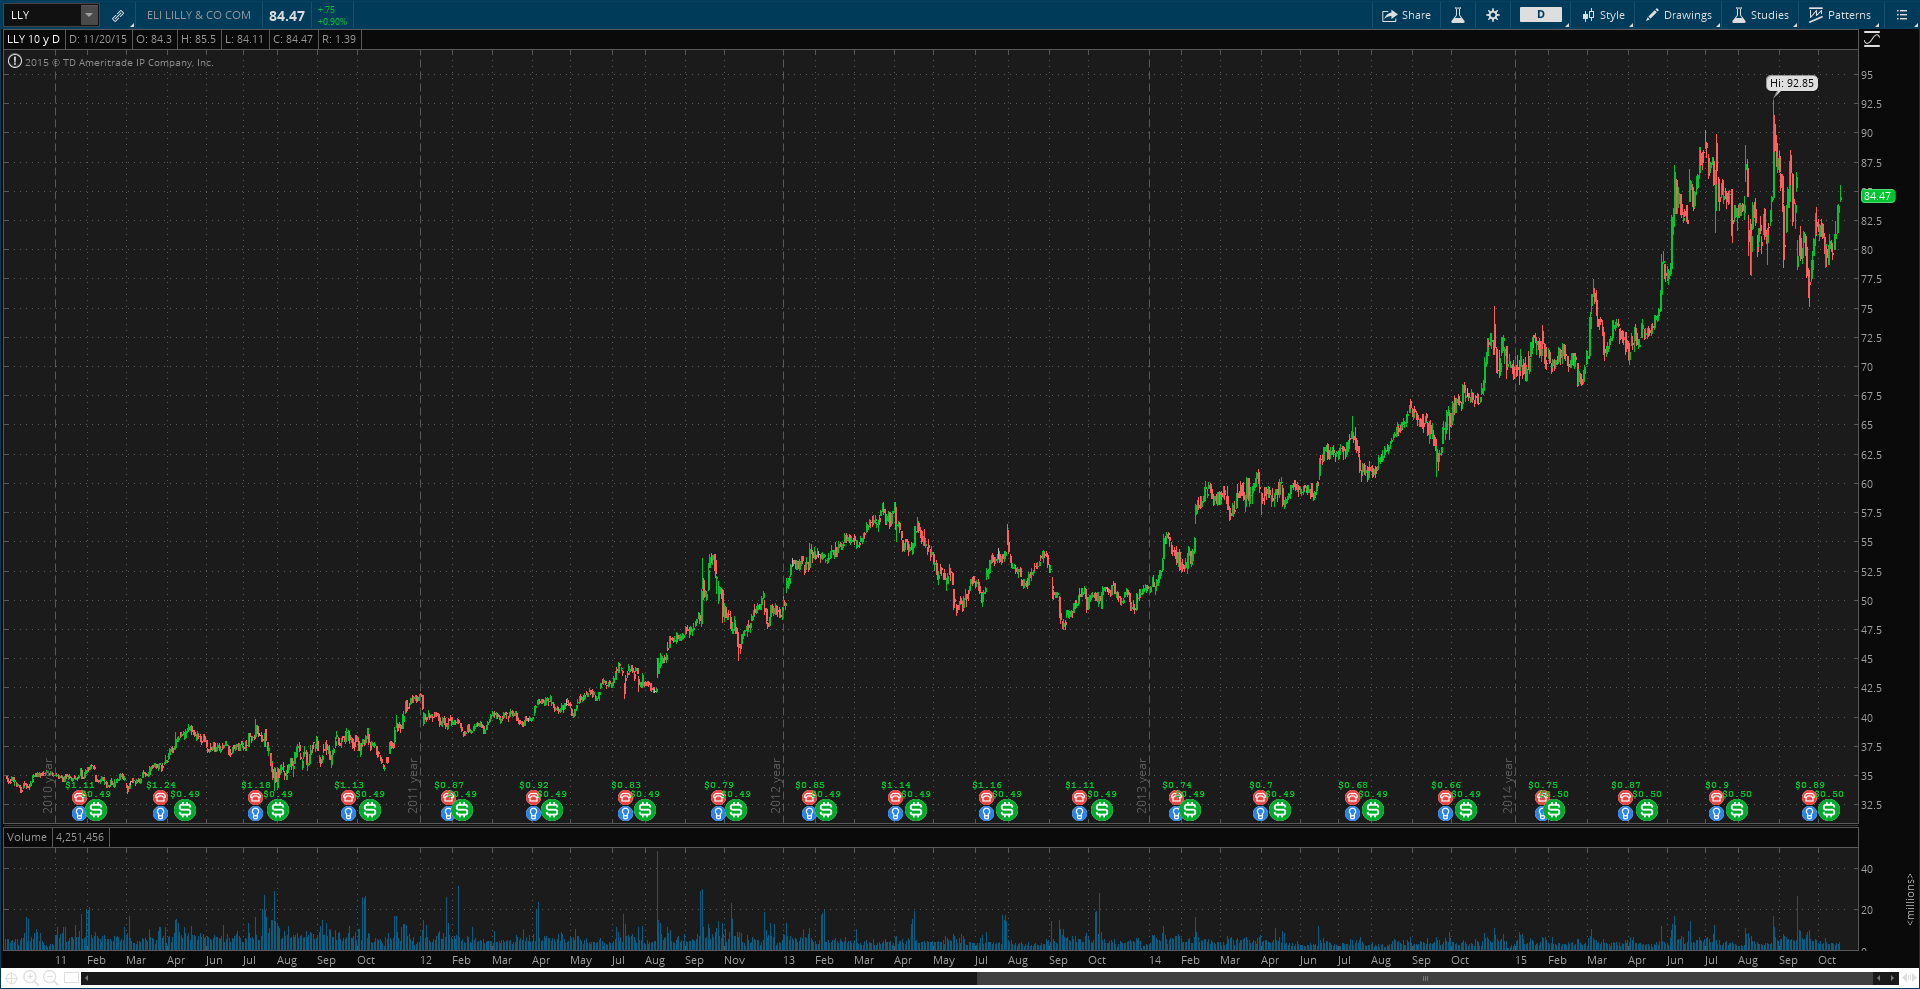 Eli Lilly (LLY) - Past 5-Years